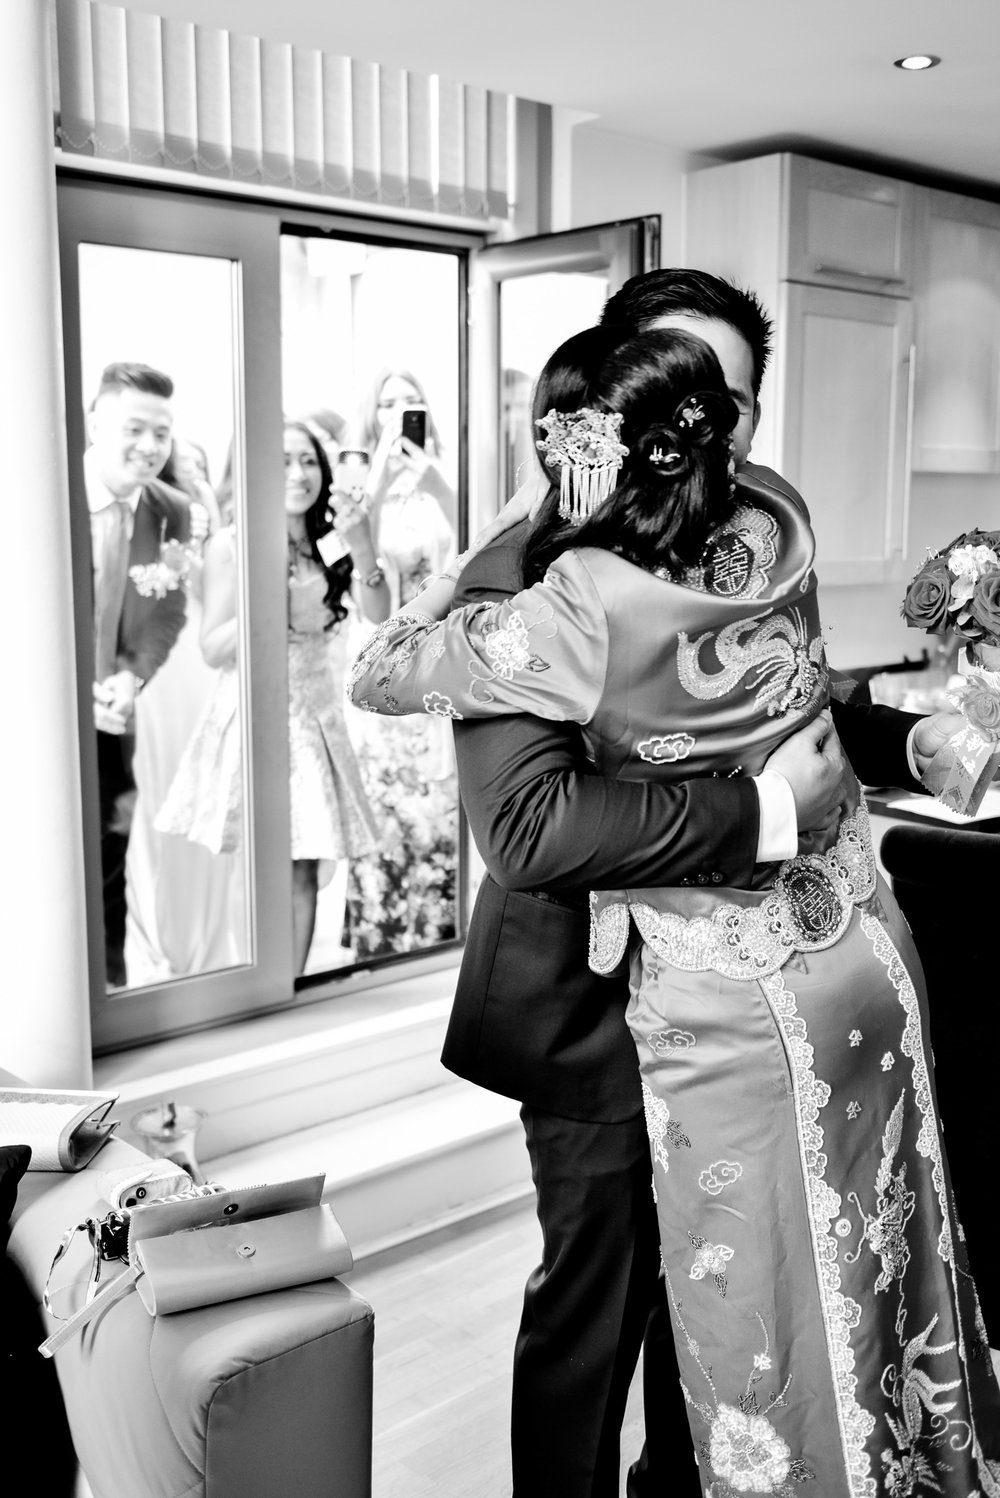 Wedding_Luke_Musharbash_Photographer_13.jpg